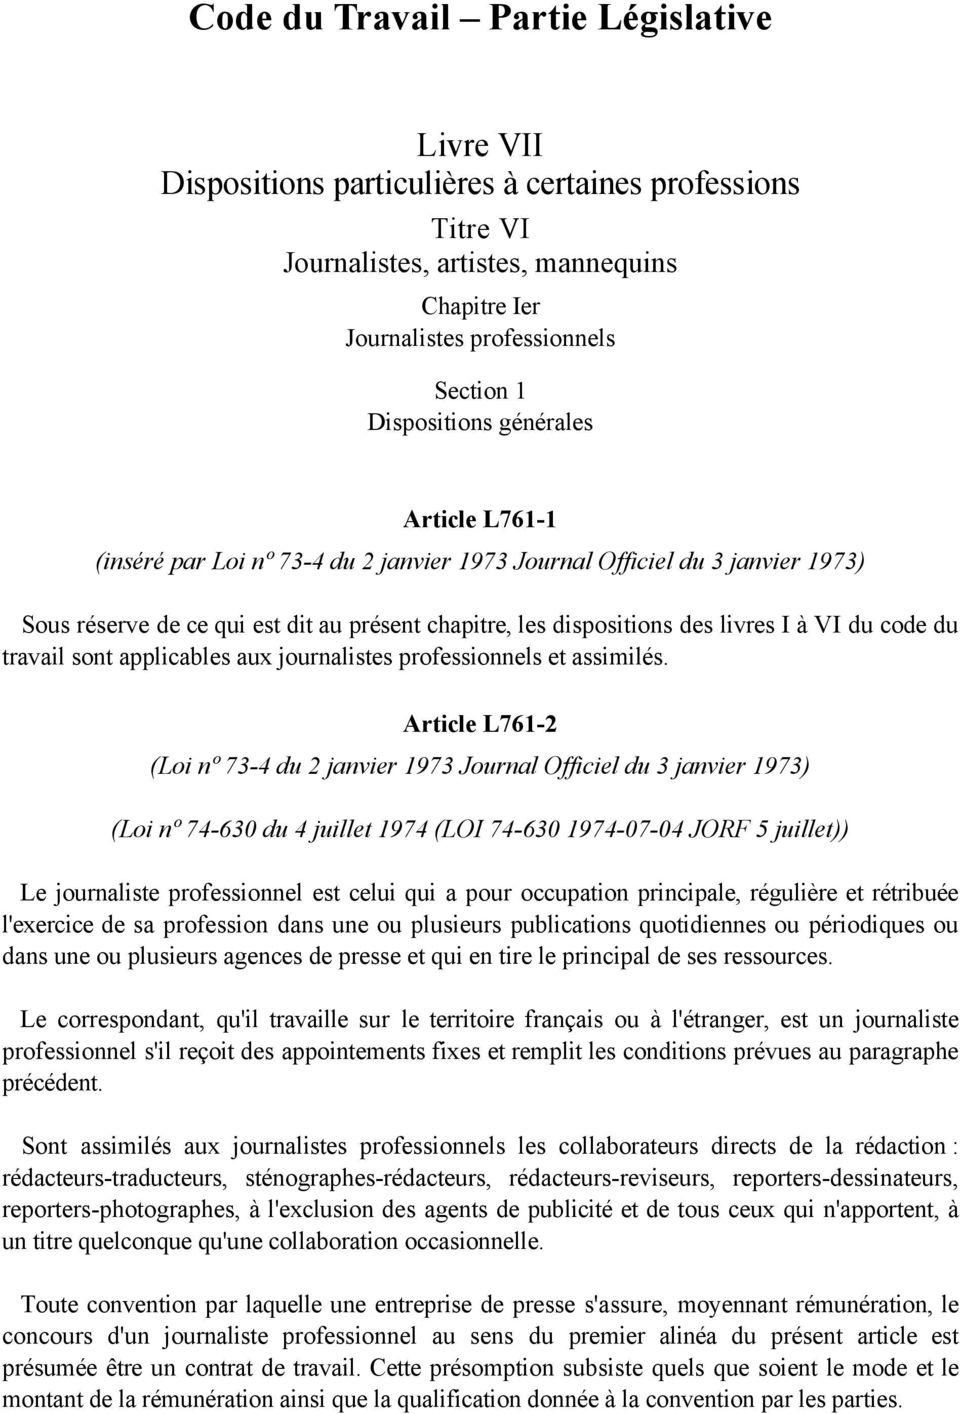 Code Du Travail Partie Legislative Pdf